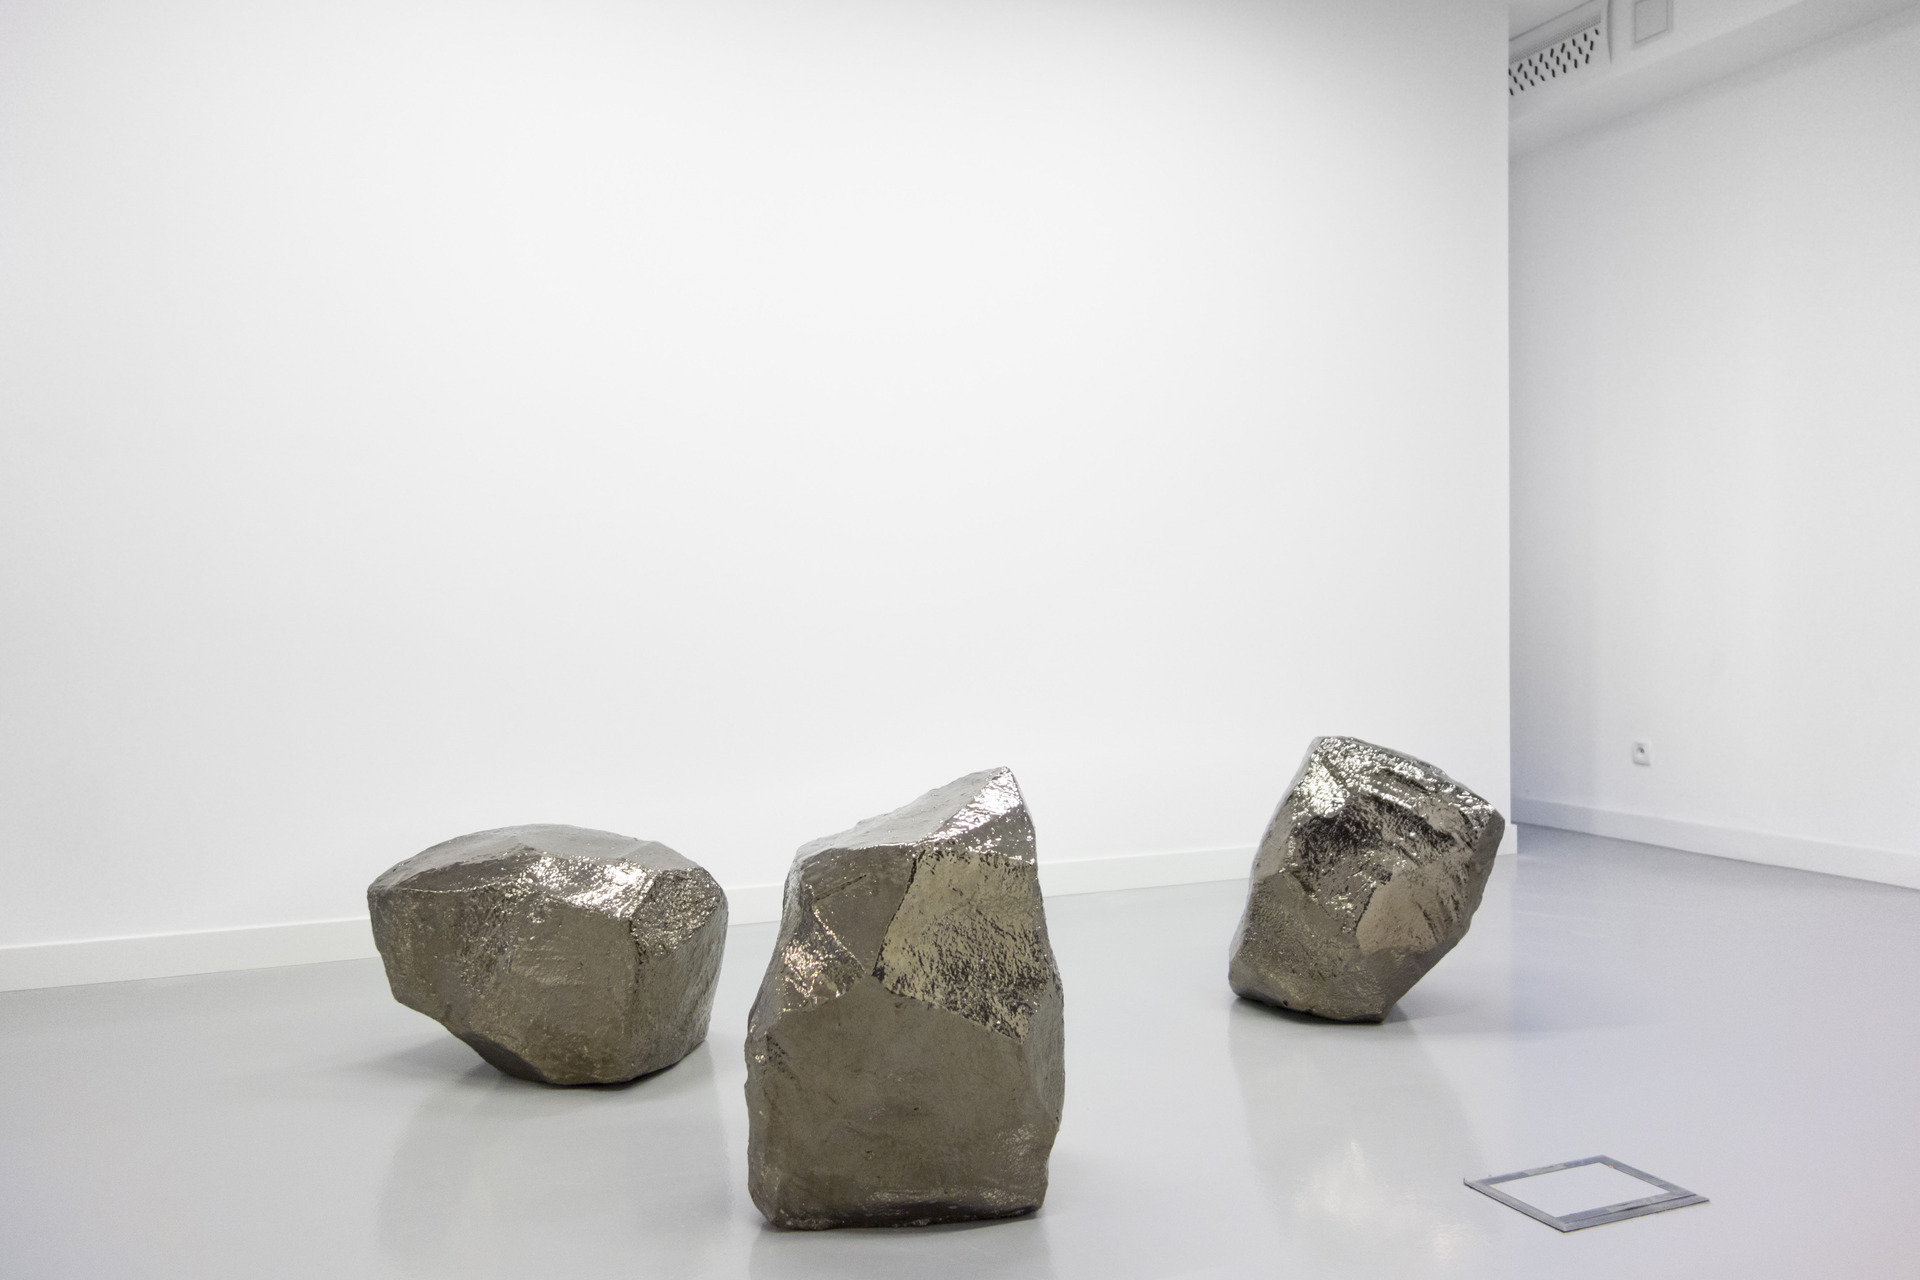 Thomas van Linge, Untitled (3 Rocks), 2014, 60x70x50cm